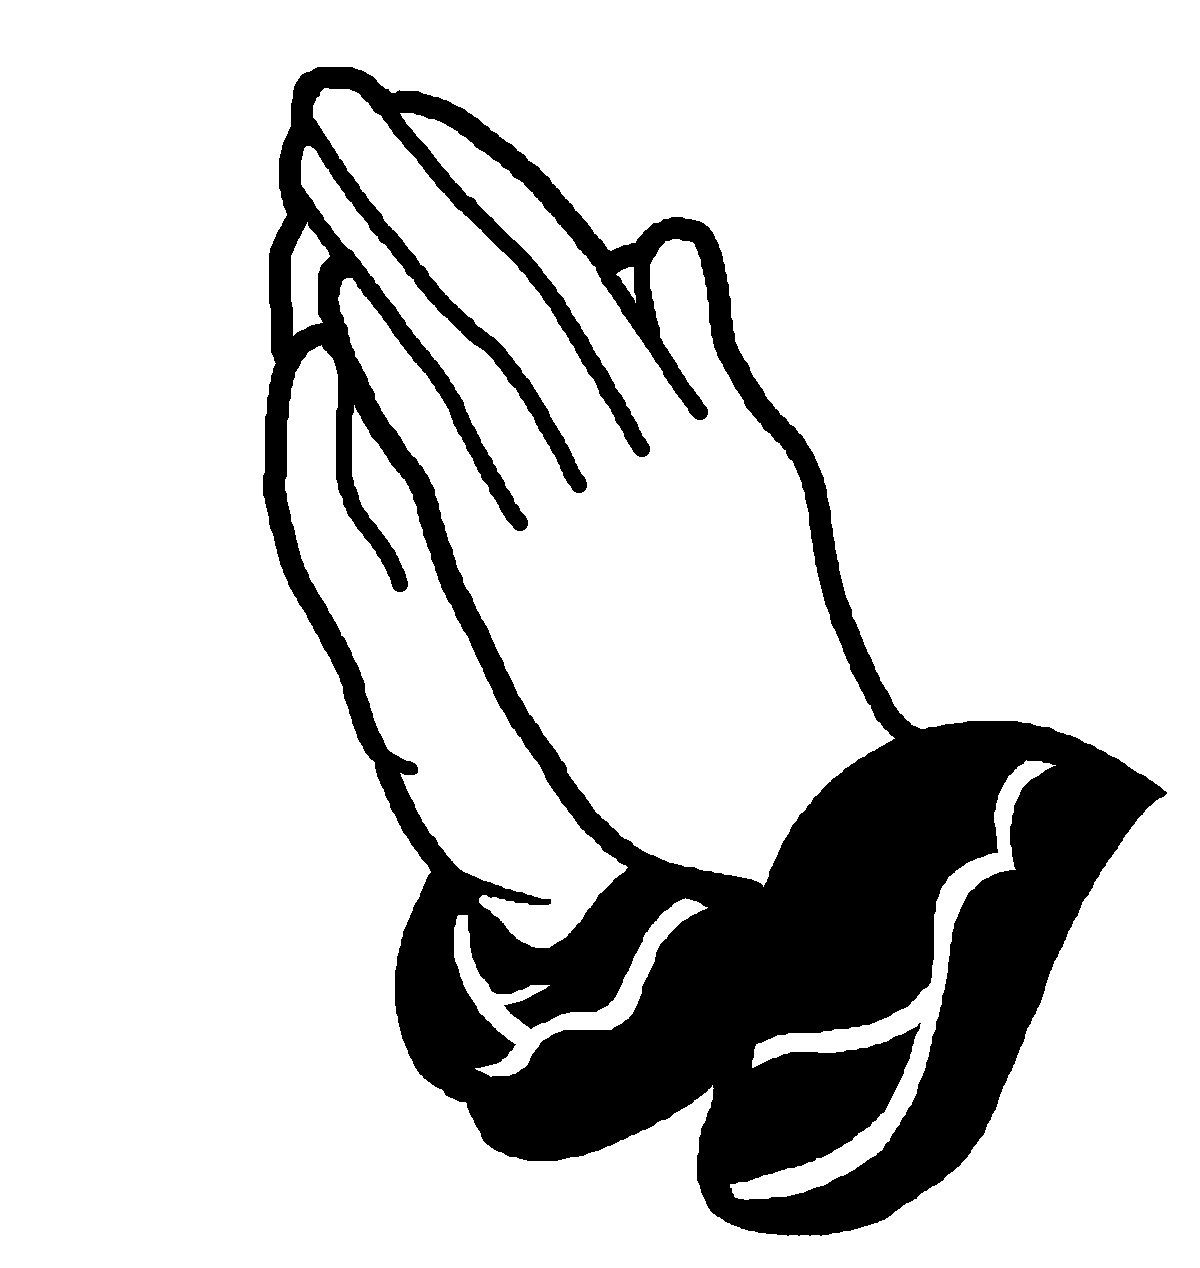 Hand clipart pray. Fresh praying hands collection